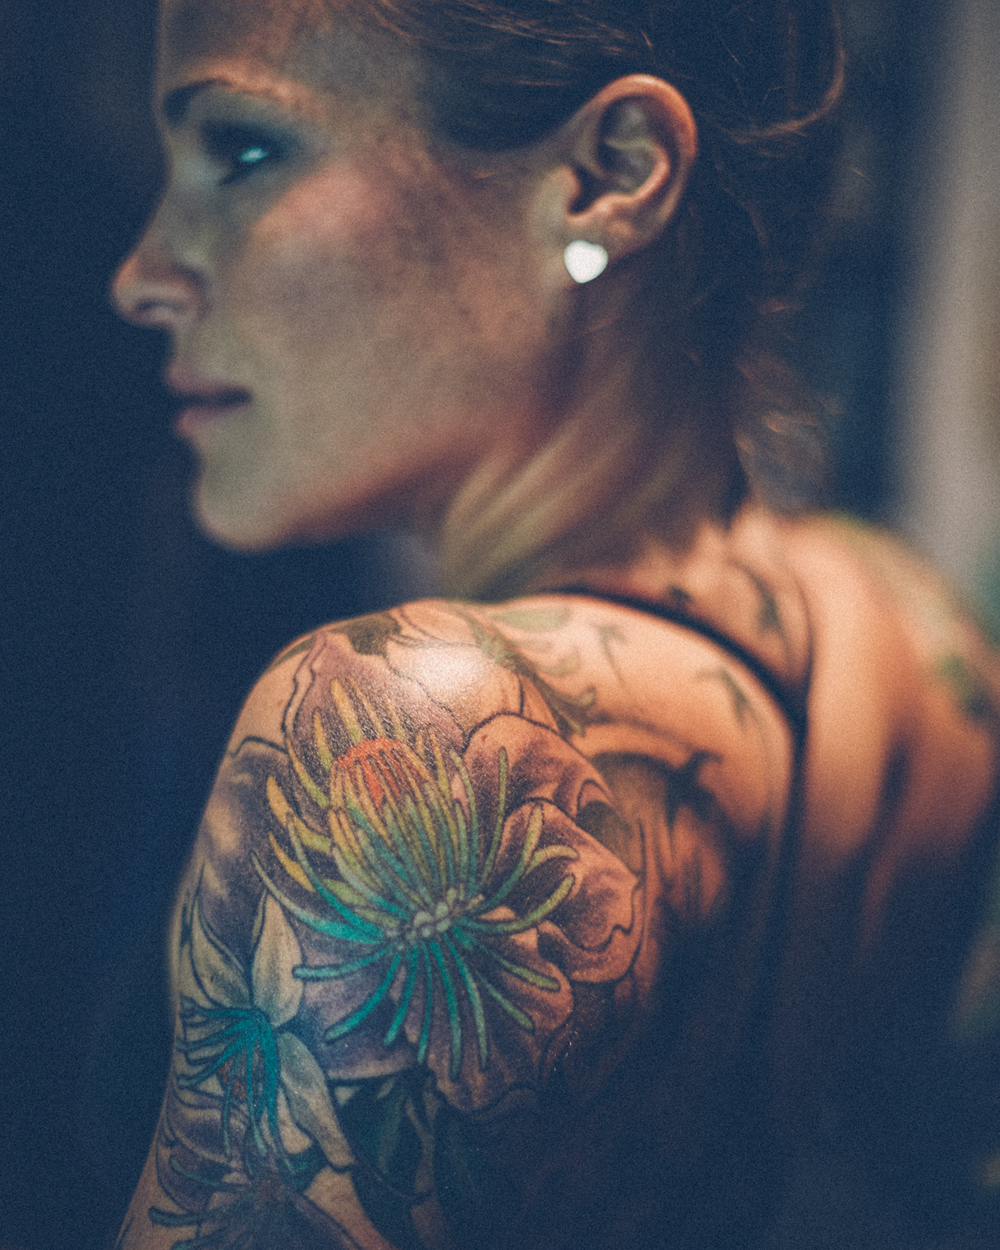 Union-of-Makers-Tattoo-Artistry-Part-Two-01.jpg